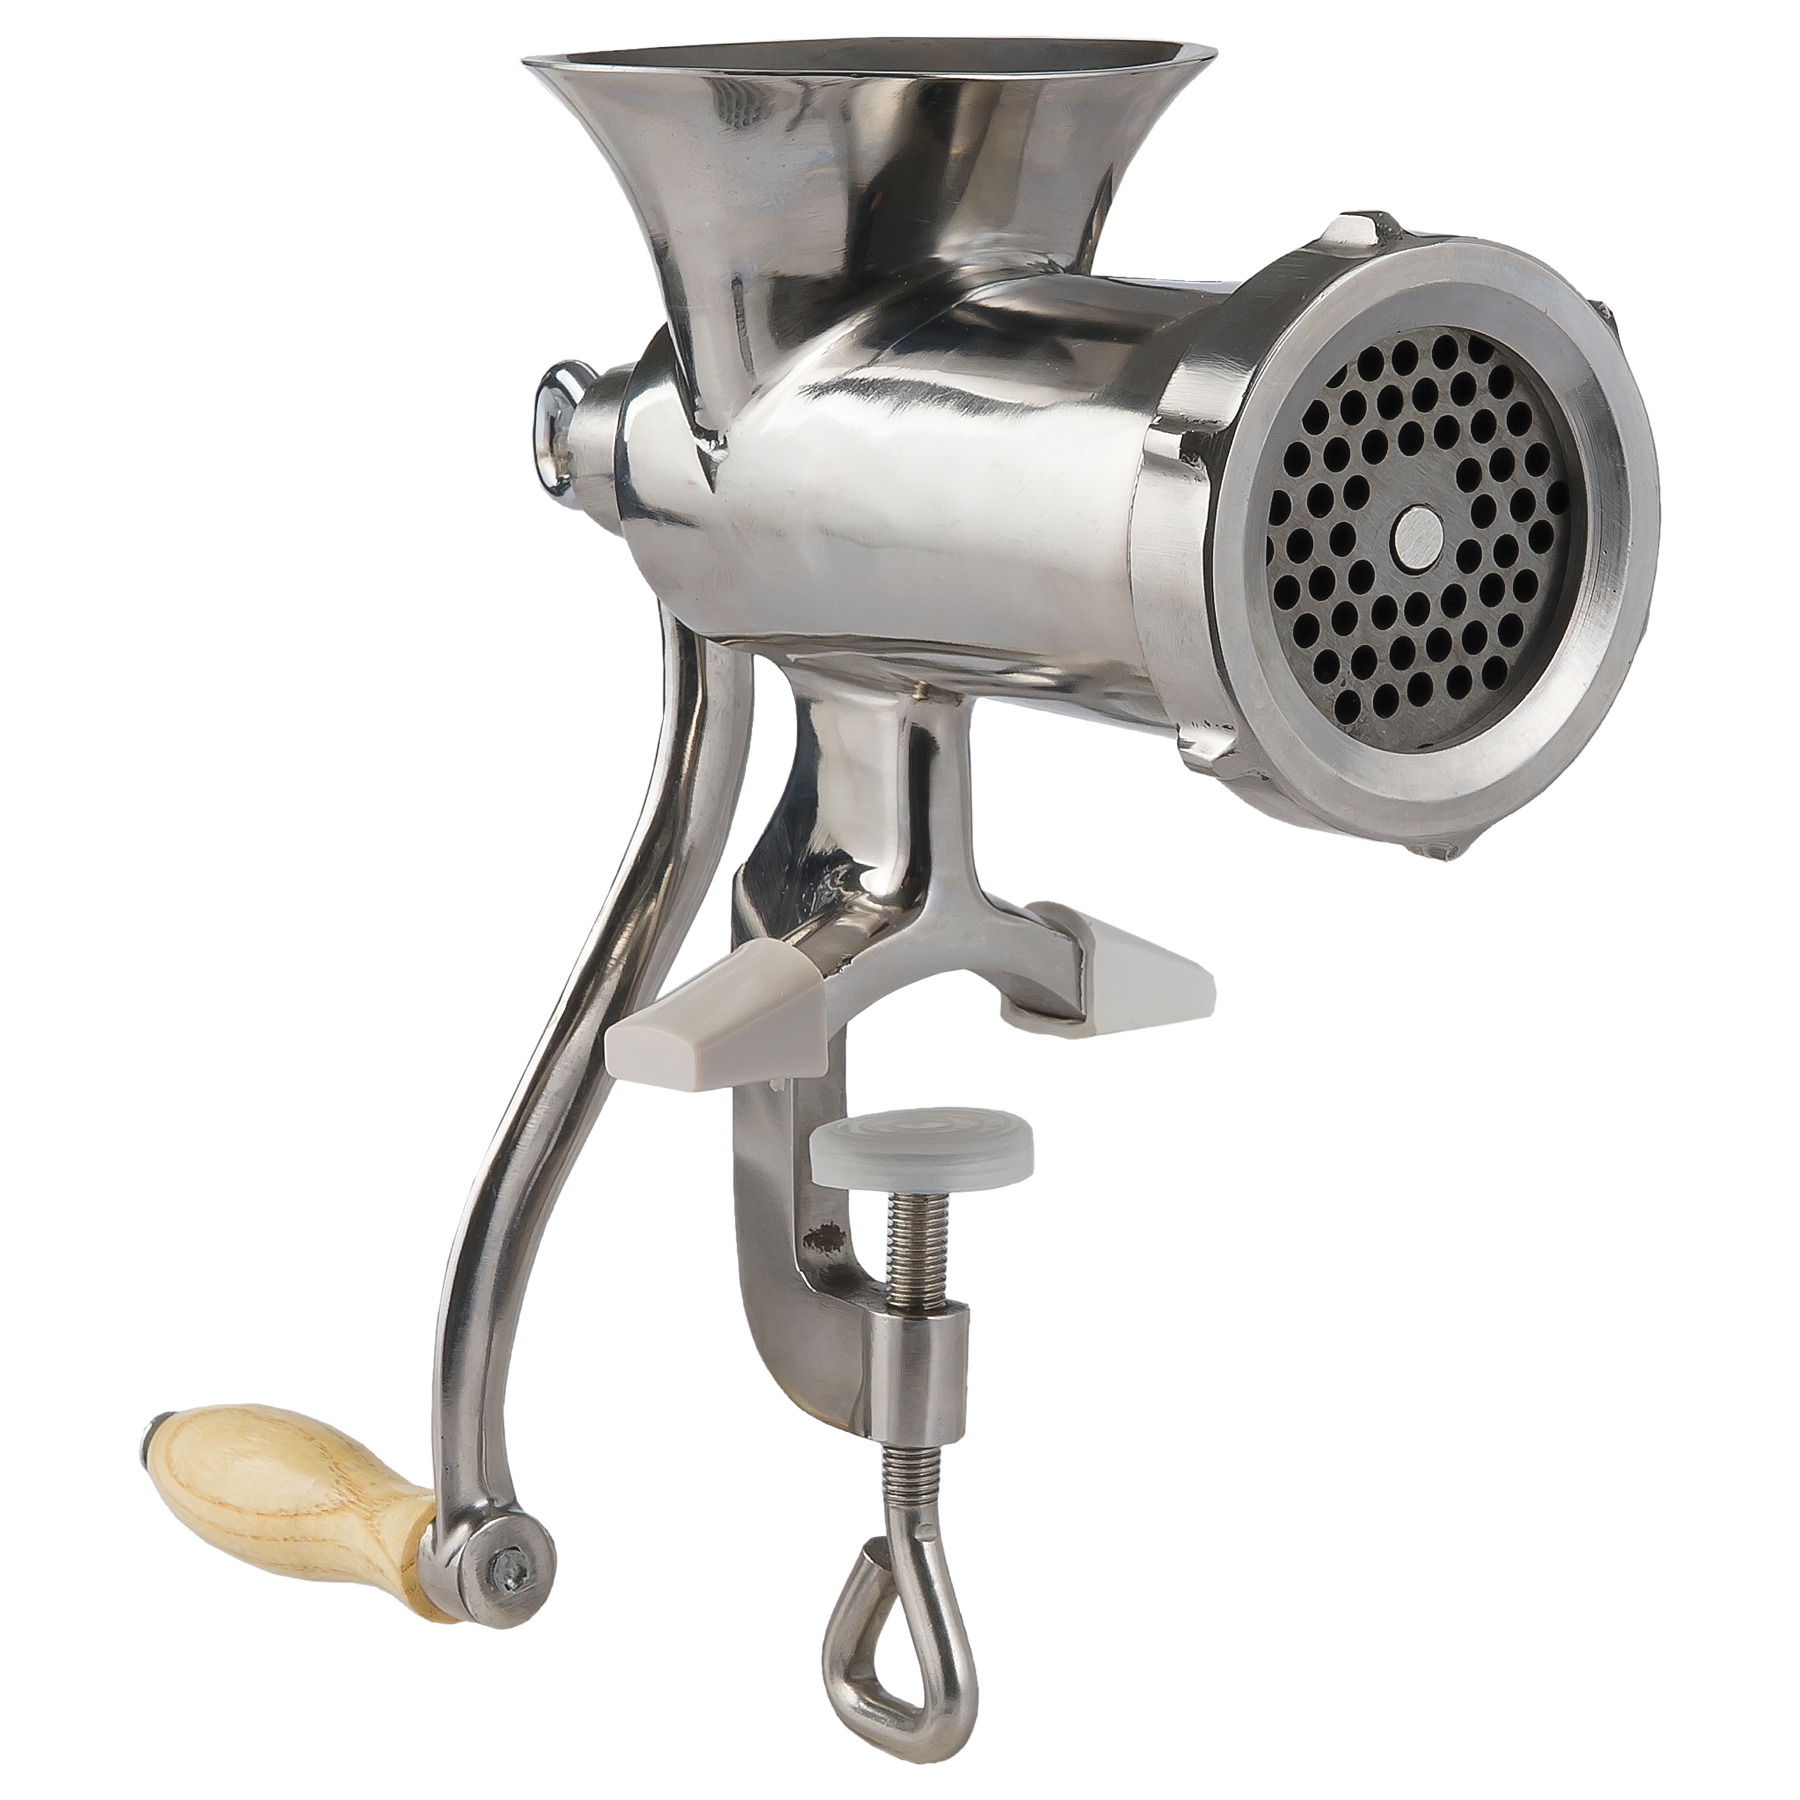 #10 Stainless Steel Clamp On Hand Grinder